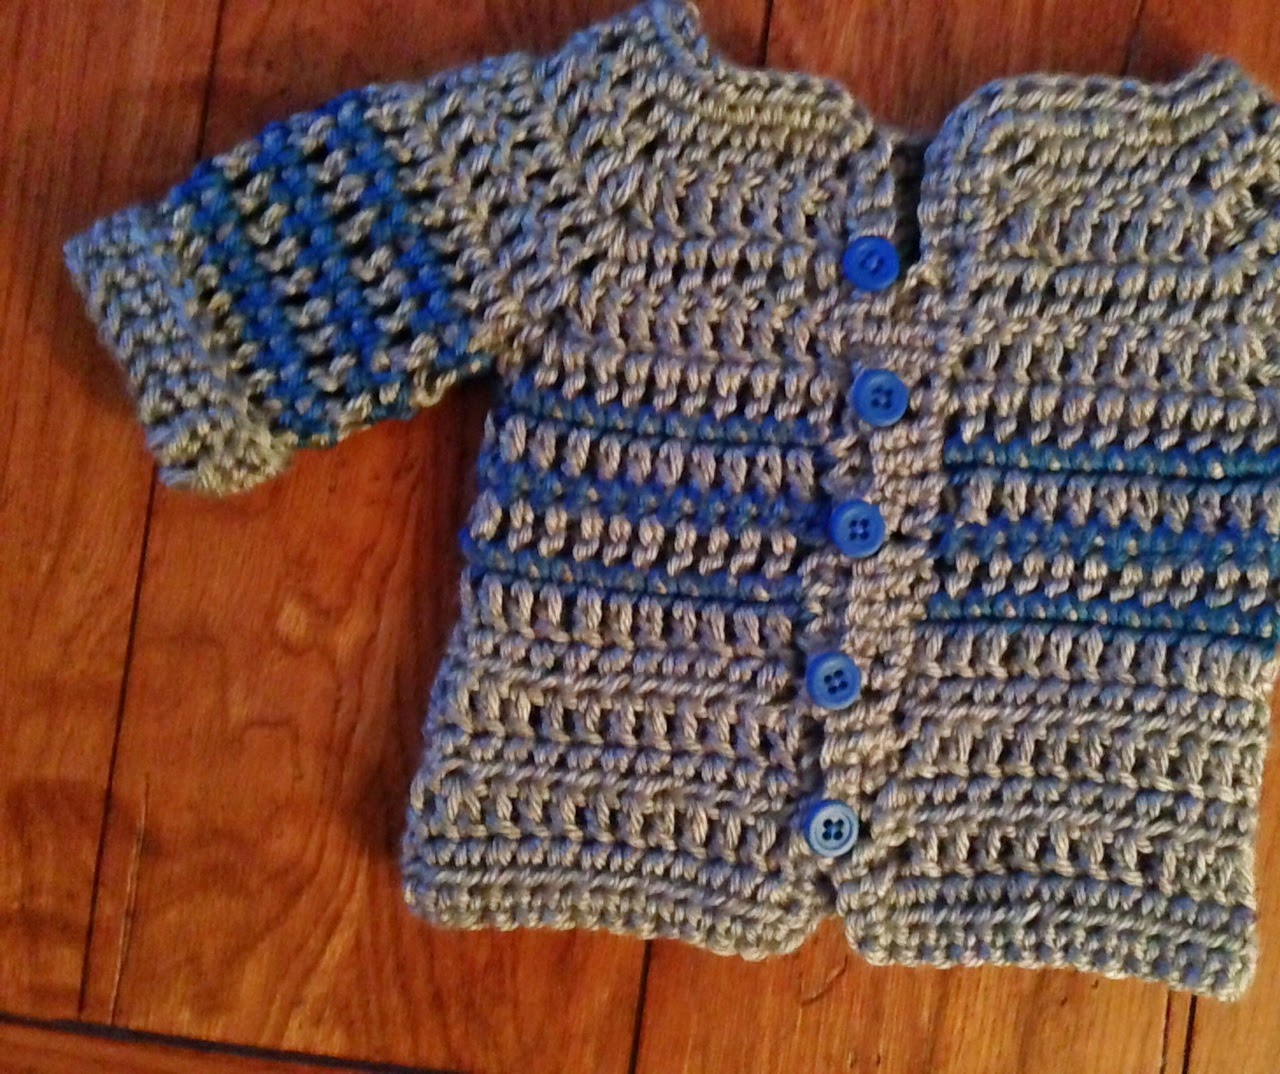 Free Crochet Patterns For Easy Baby Sweaters : Craft Brag: Crochet Baby Boy Sweater Pattern - Free